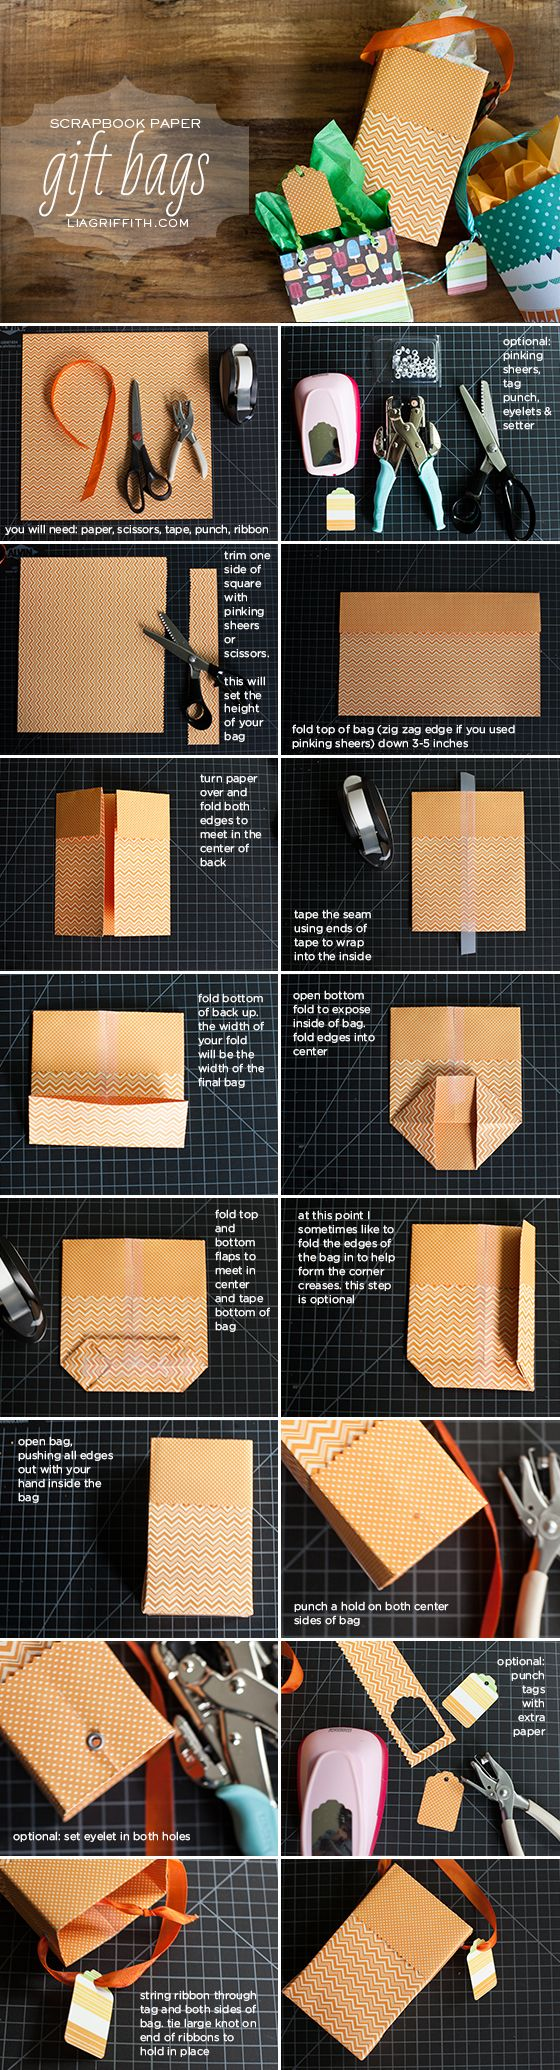 Gift Bag Tutorial: Reuse paper shopping bags or scrap paper!